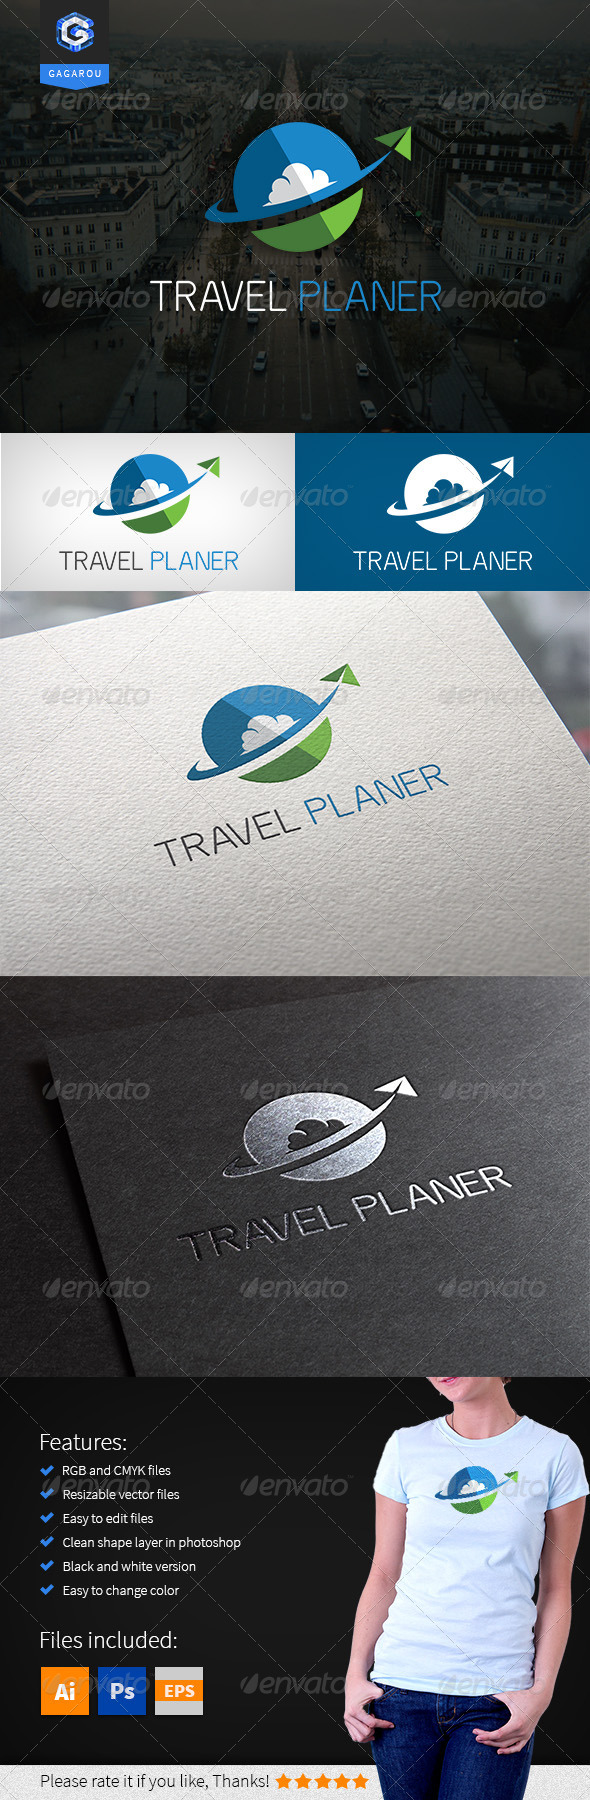 GraphicRiver Travel Planer Logo 8307977